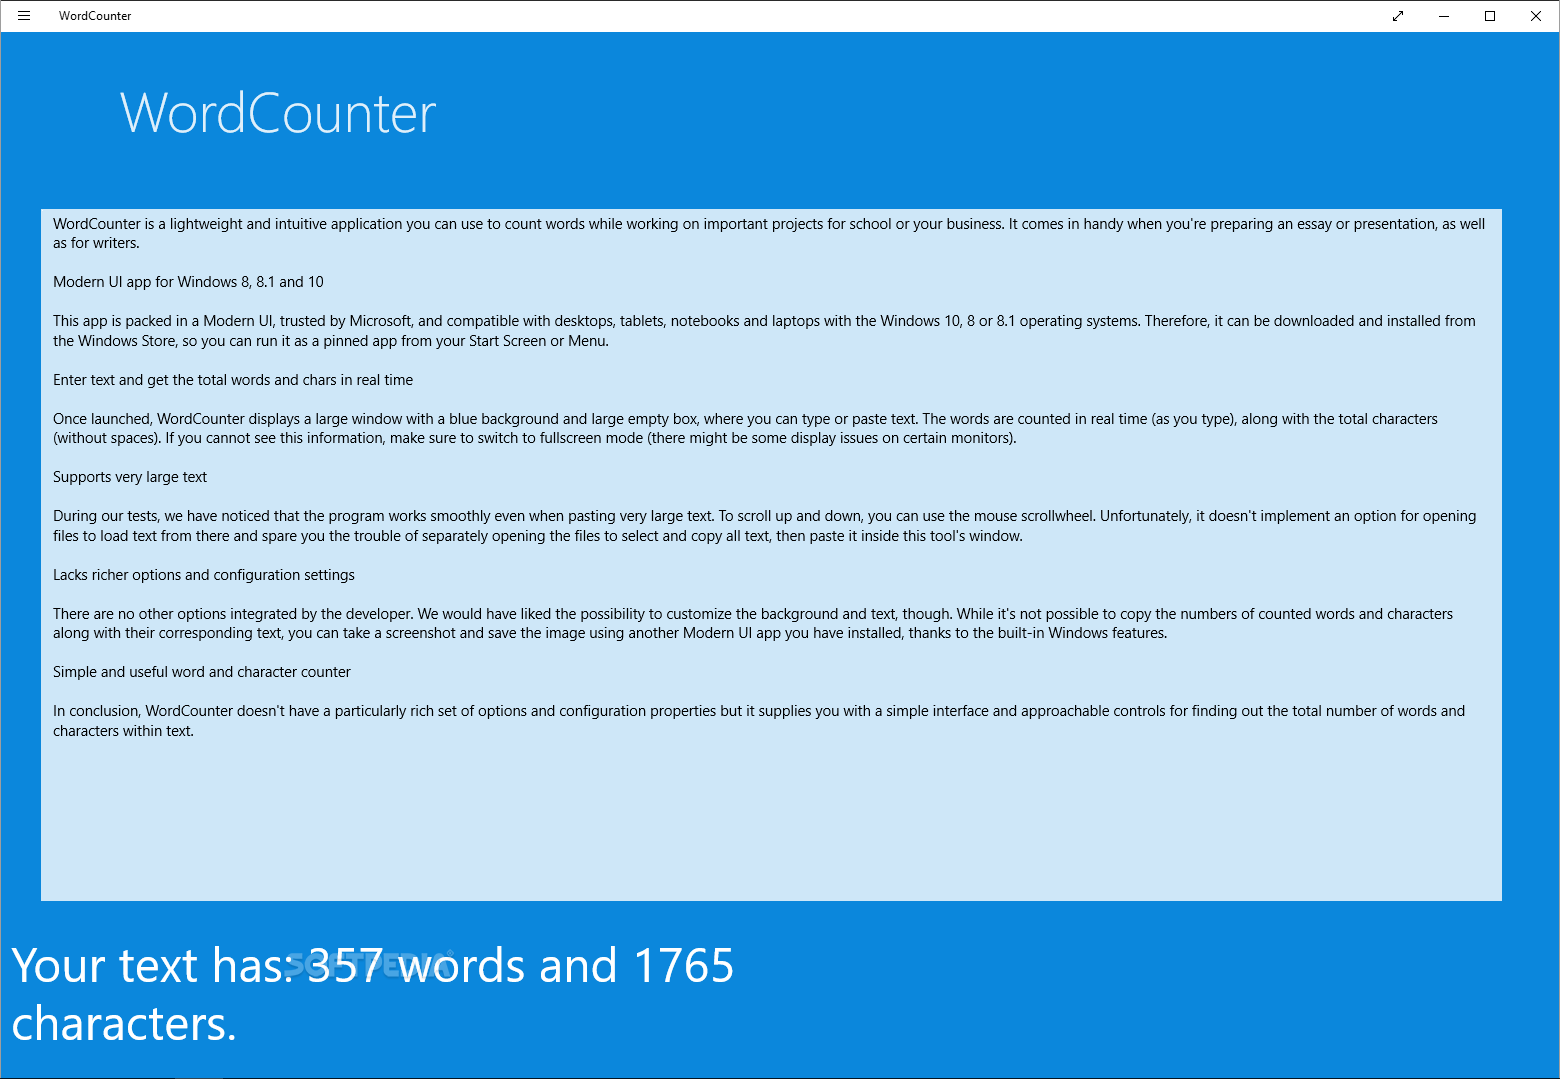 word counter essay mac The upper section displays a progress bar and word count for your manuscript mac project target window mac win project if you want to hit a minimum word count for a magazine article, essay, blog post, scene, or chapter (if you use a single document for each), this is the feature to use once set, your.